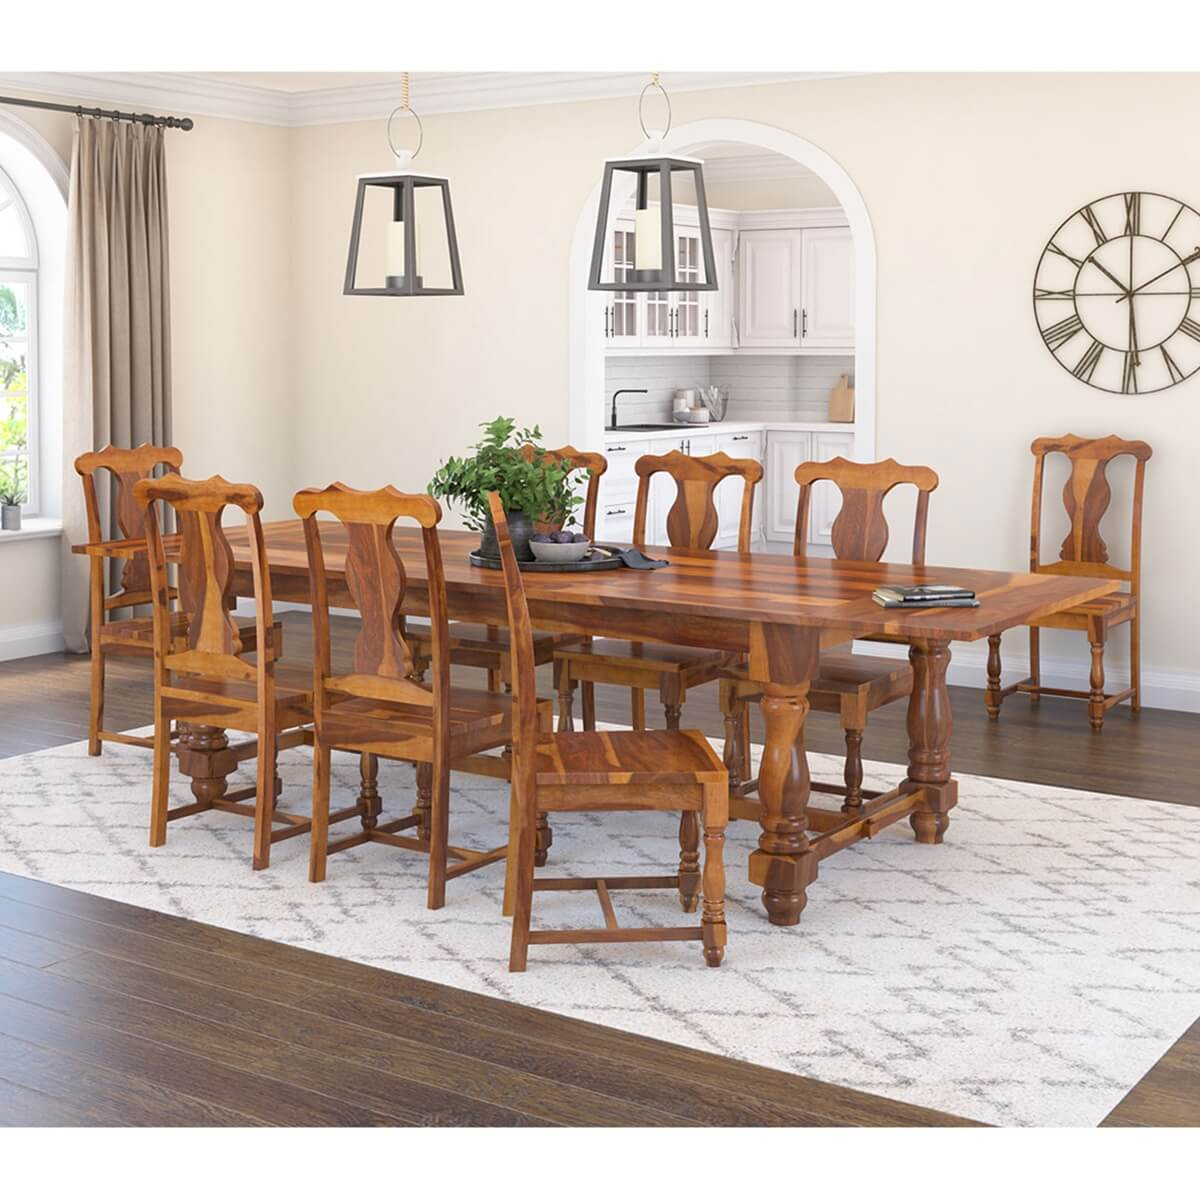 Rustic Solid Wood Dining Table amp Chair Set Furniture w  : 4874 from www.sierralivingconcepts.com size 1200 x 1200 jpeg 164kB